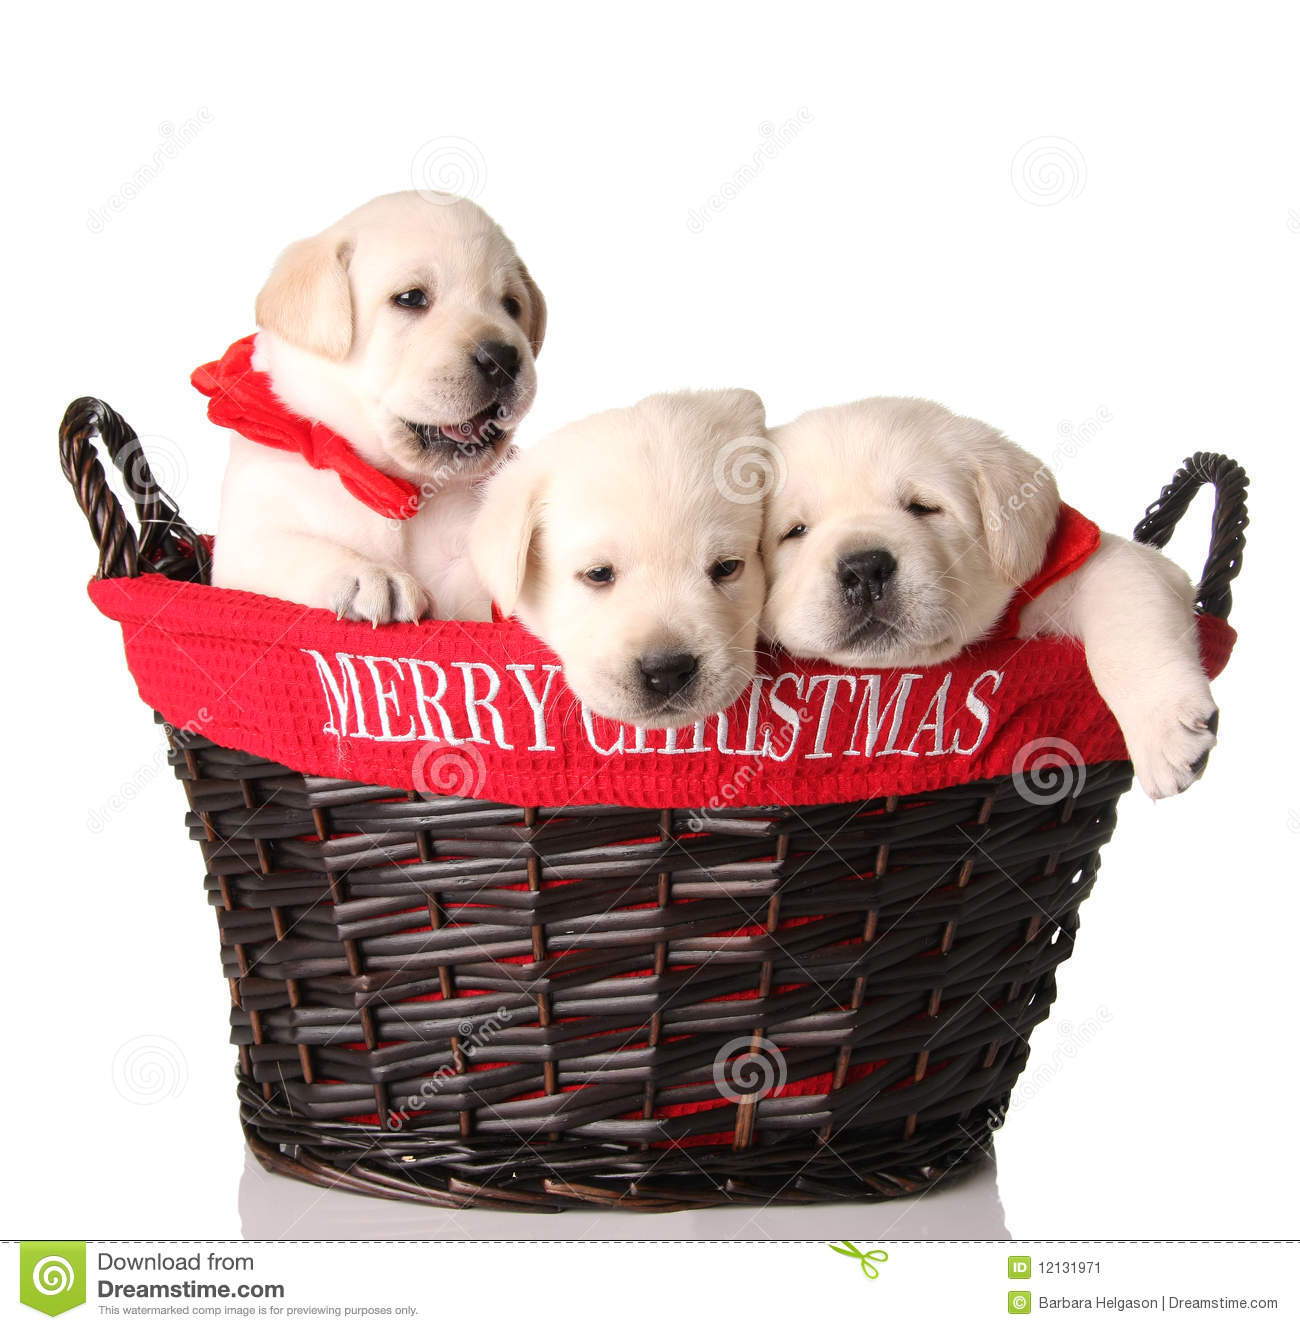 3 053 Christmas Labrador Dog Photos Free Royalty Free Stock Photos From Dreamstime